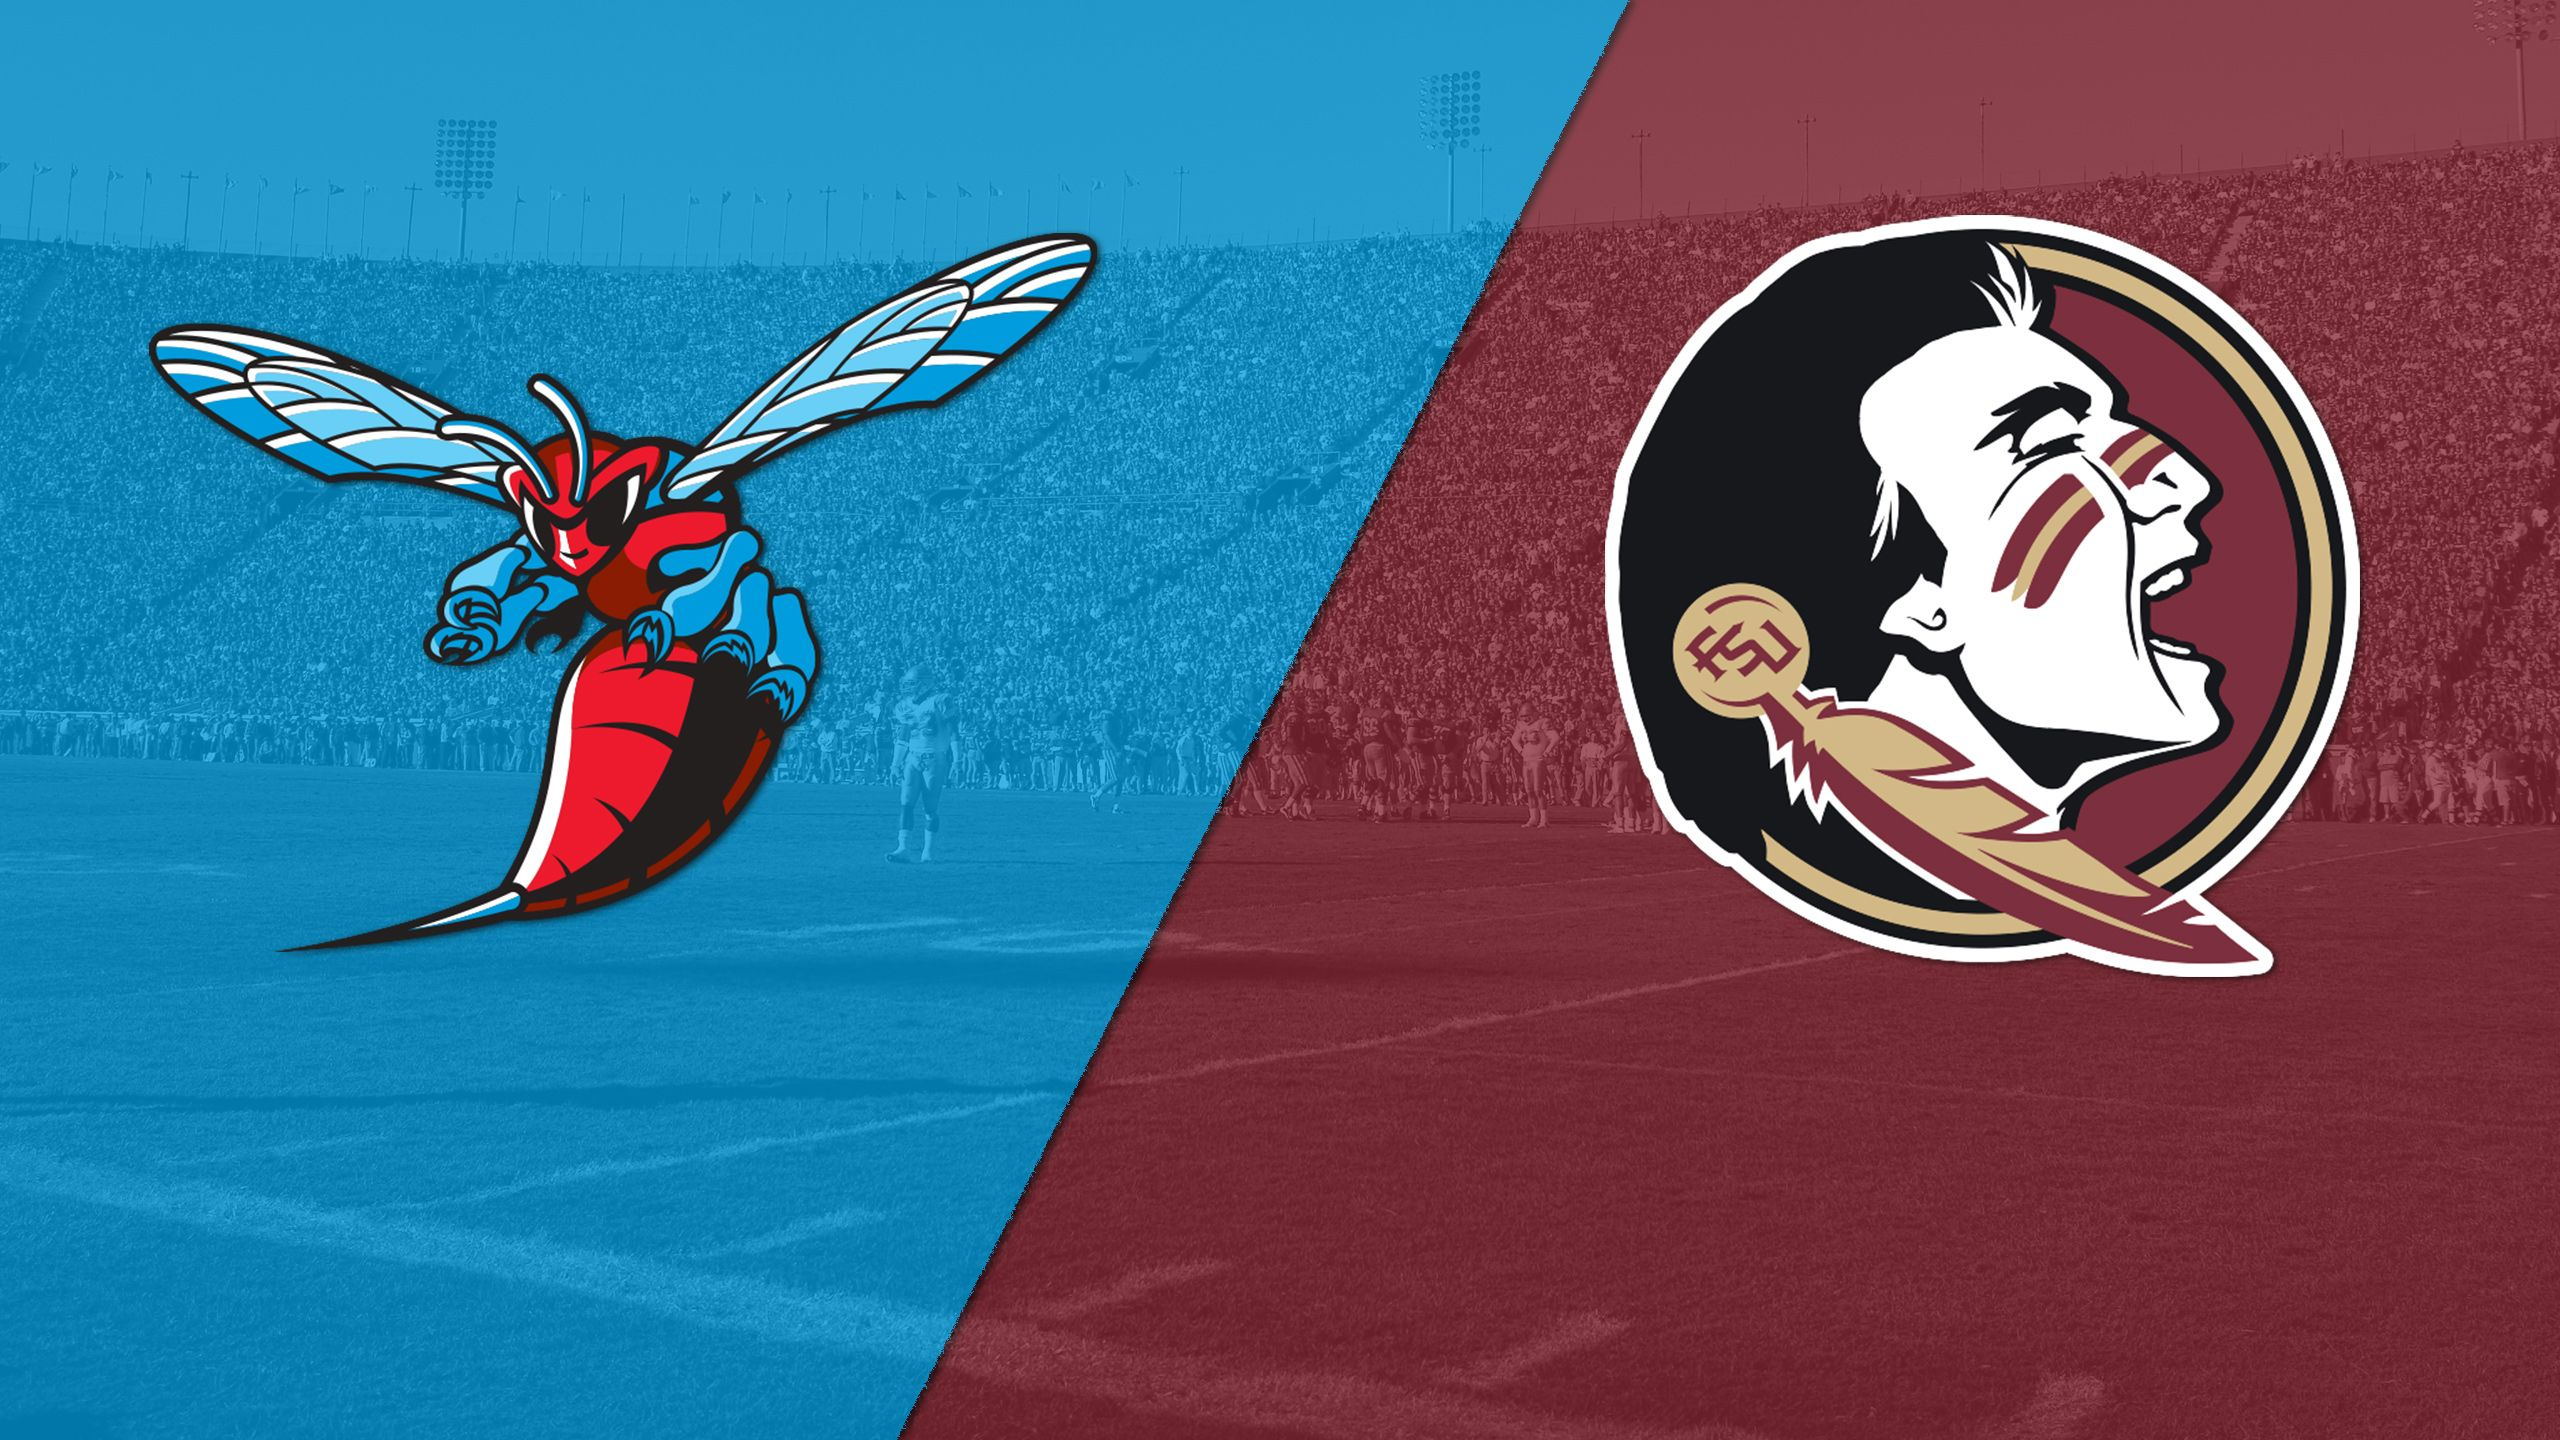 Delaware State vs. Florida State (Football)